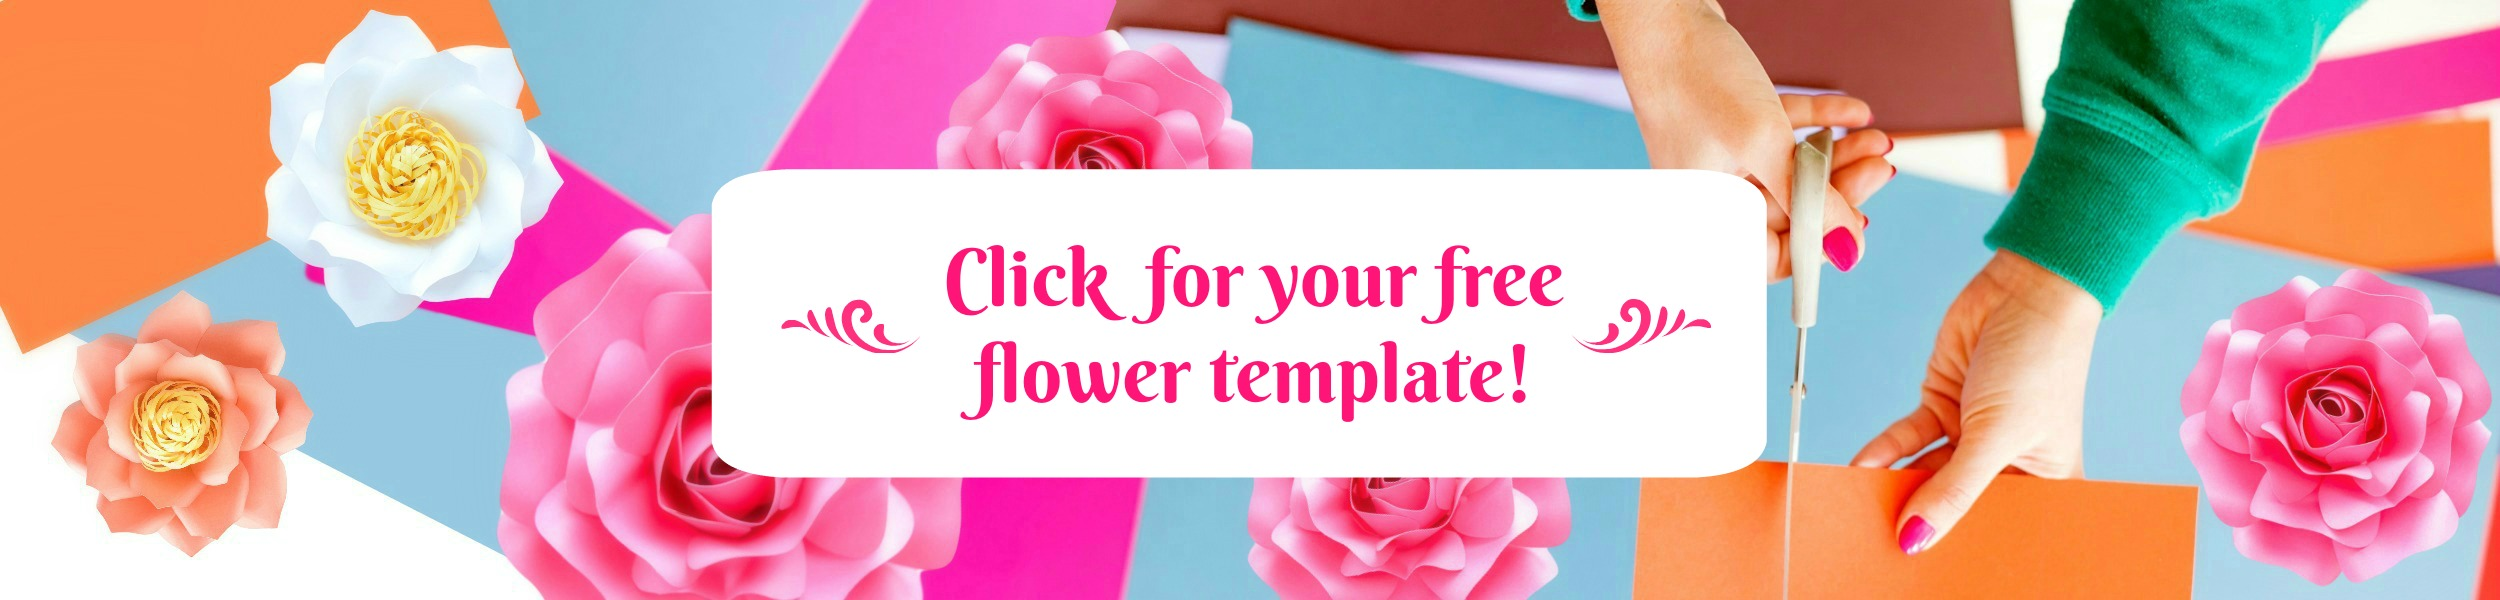 Abbi kirsten collections diy paper flower templates projects video banner free flower templates izmirmasajfo